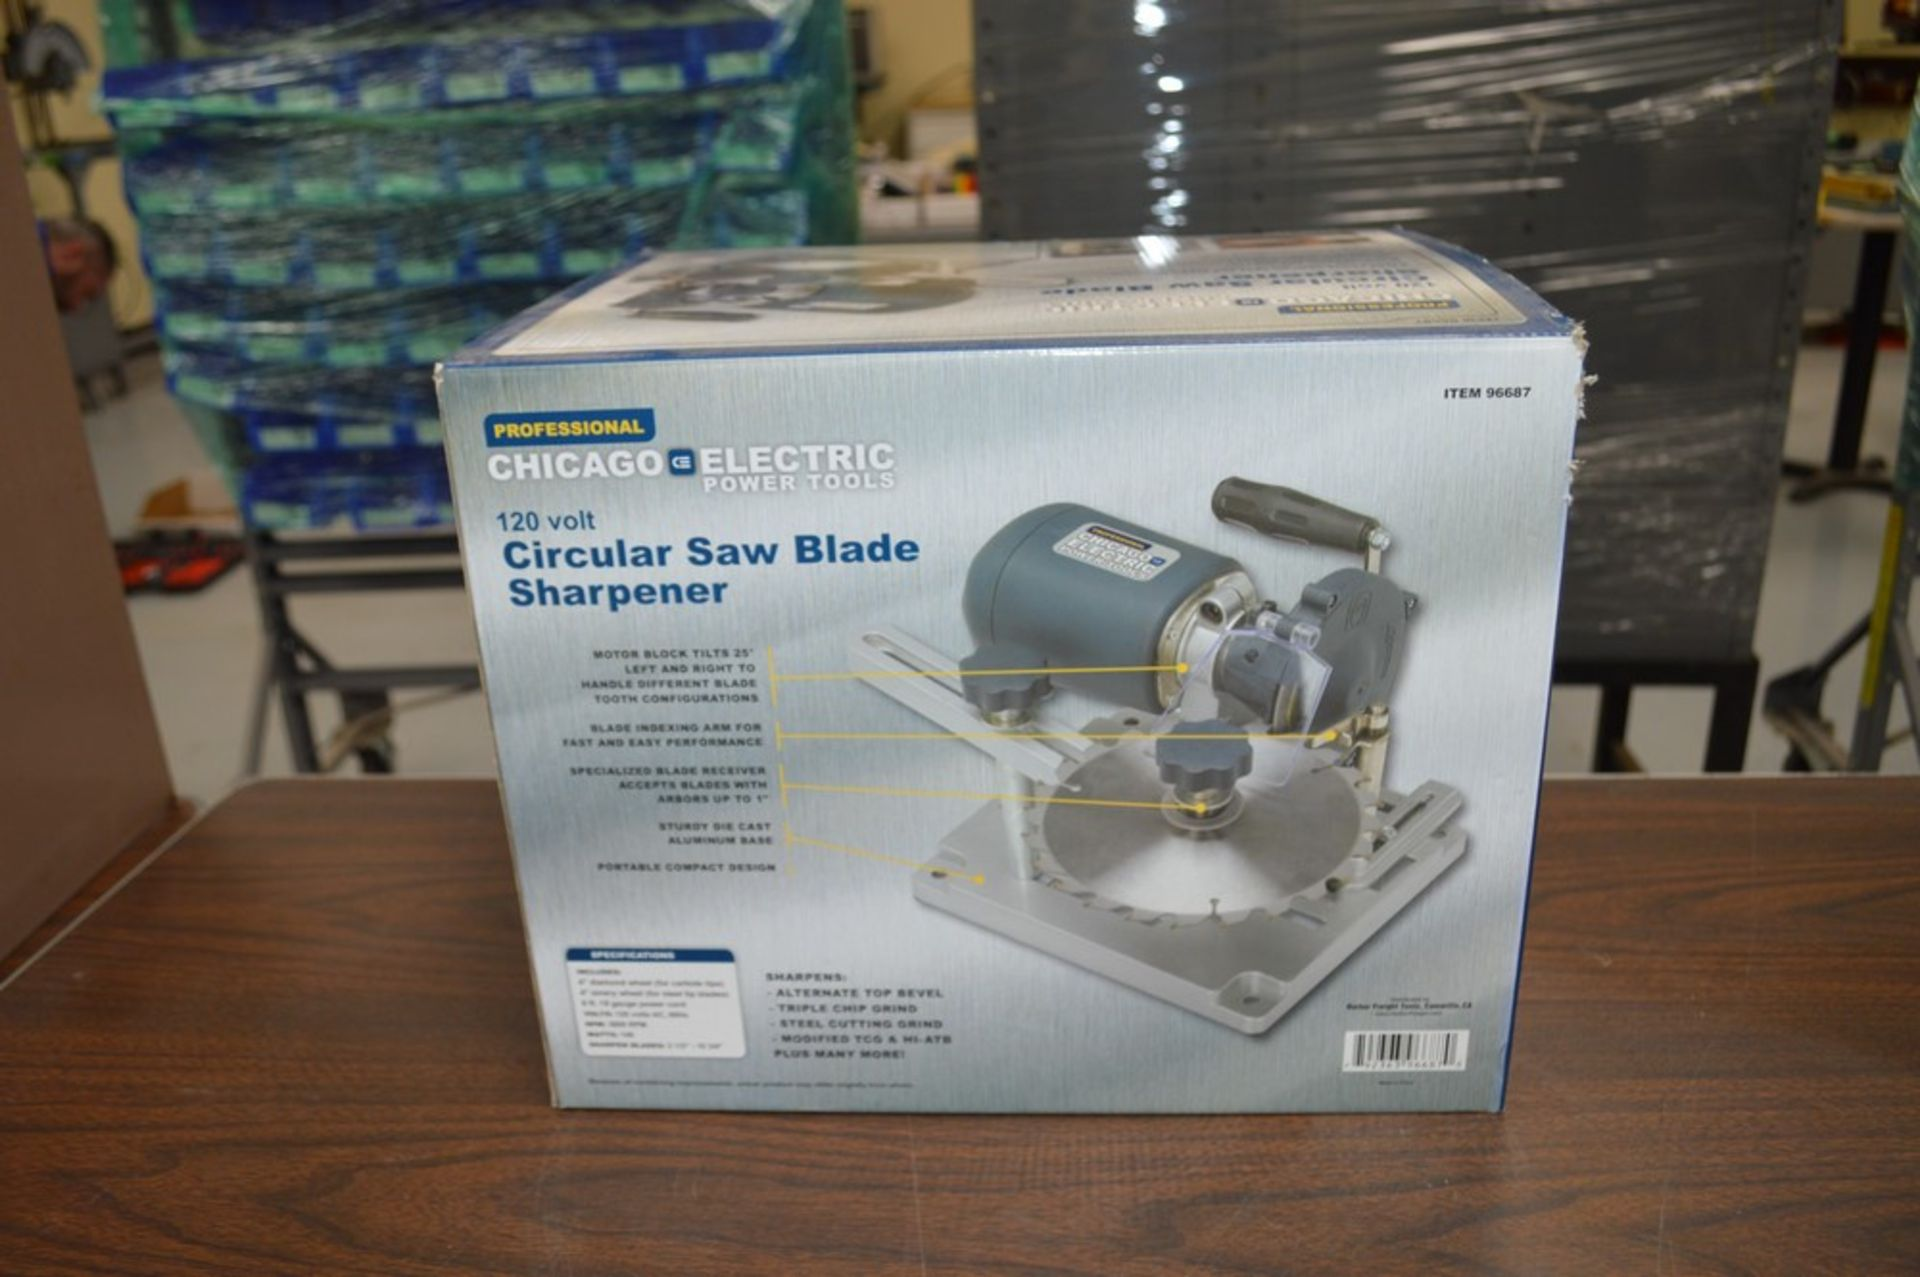 Chicago Electric 120v circular saw blade sharpner, appears new in the box - Image 4 of 4